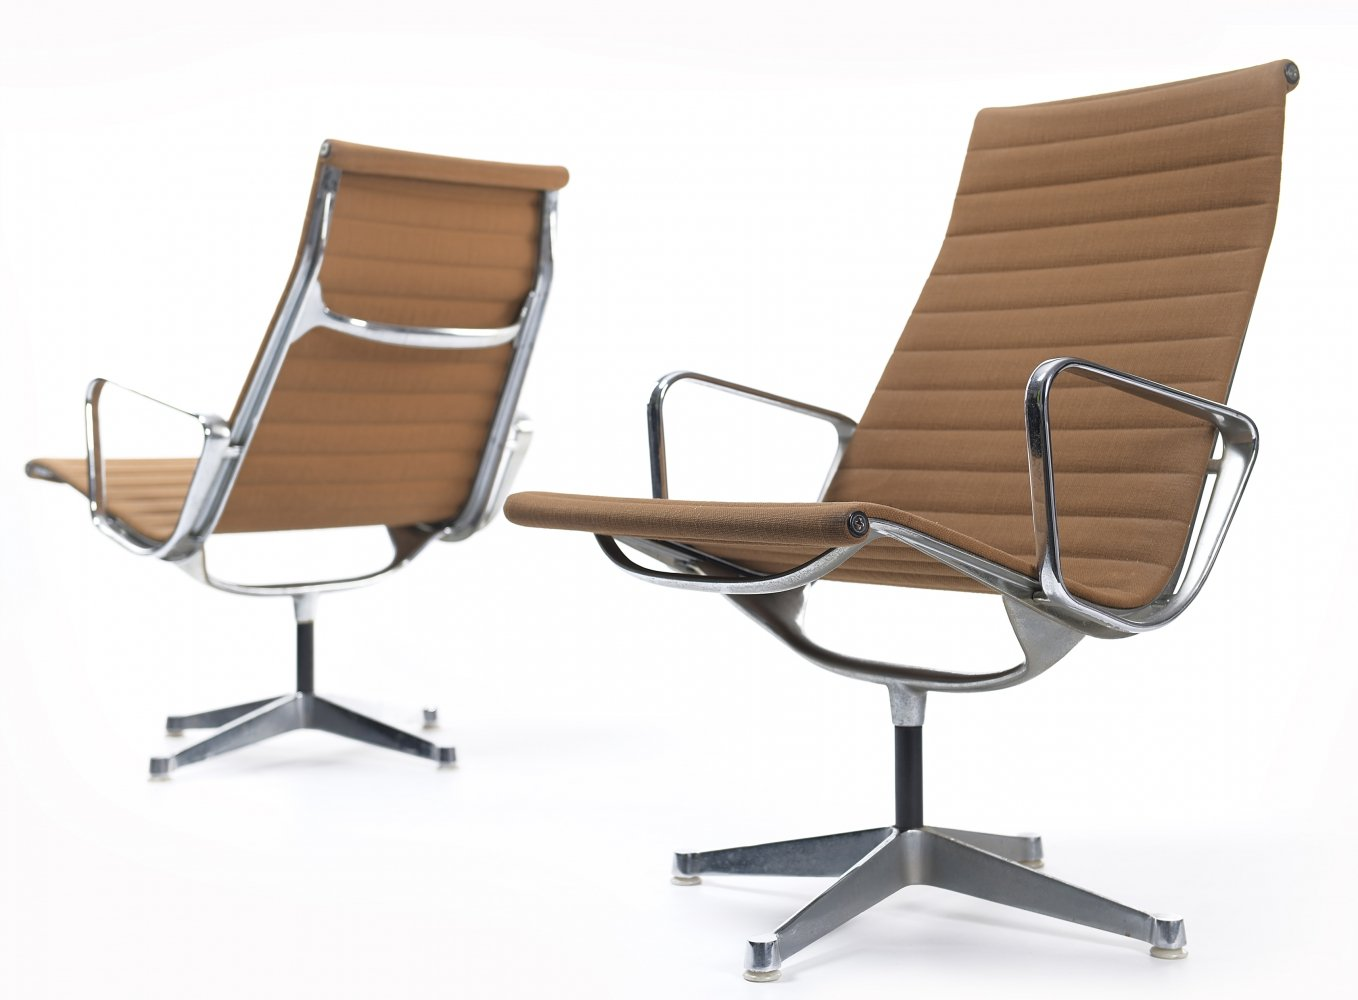 EA 116 lounge chair by Charles & Ray Eames for Herman Miller, 1960s